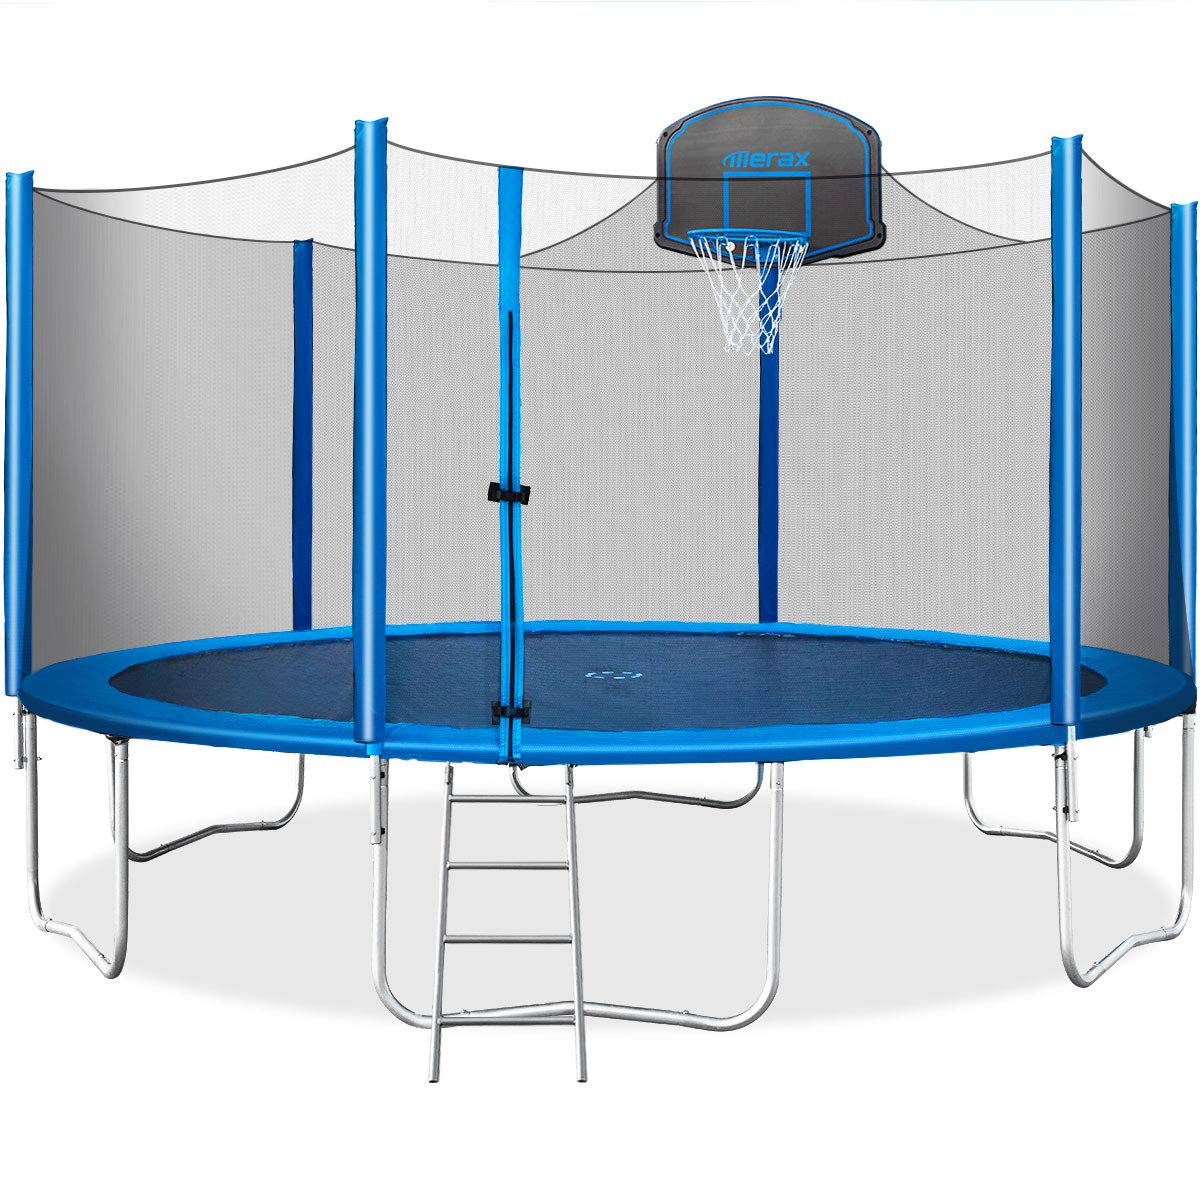 Merax 15 FT Trampoline with Safety Enclosure Net, Basketball Hoop and Ladder - 2019 Upgraded – Kids Basketball Trampoline